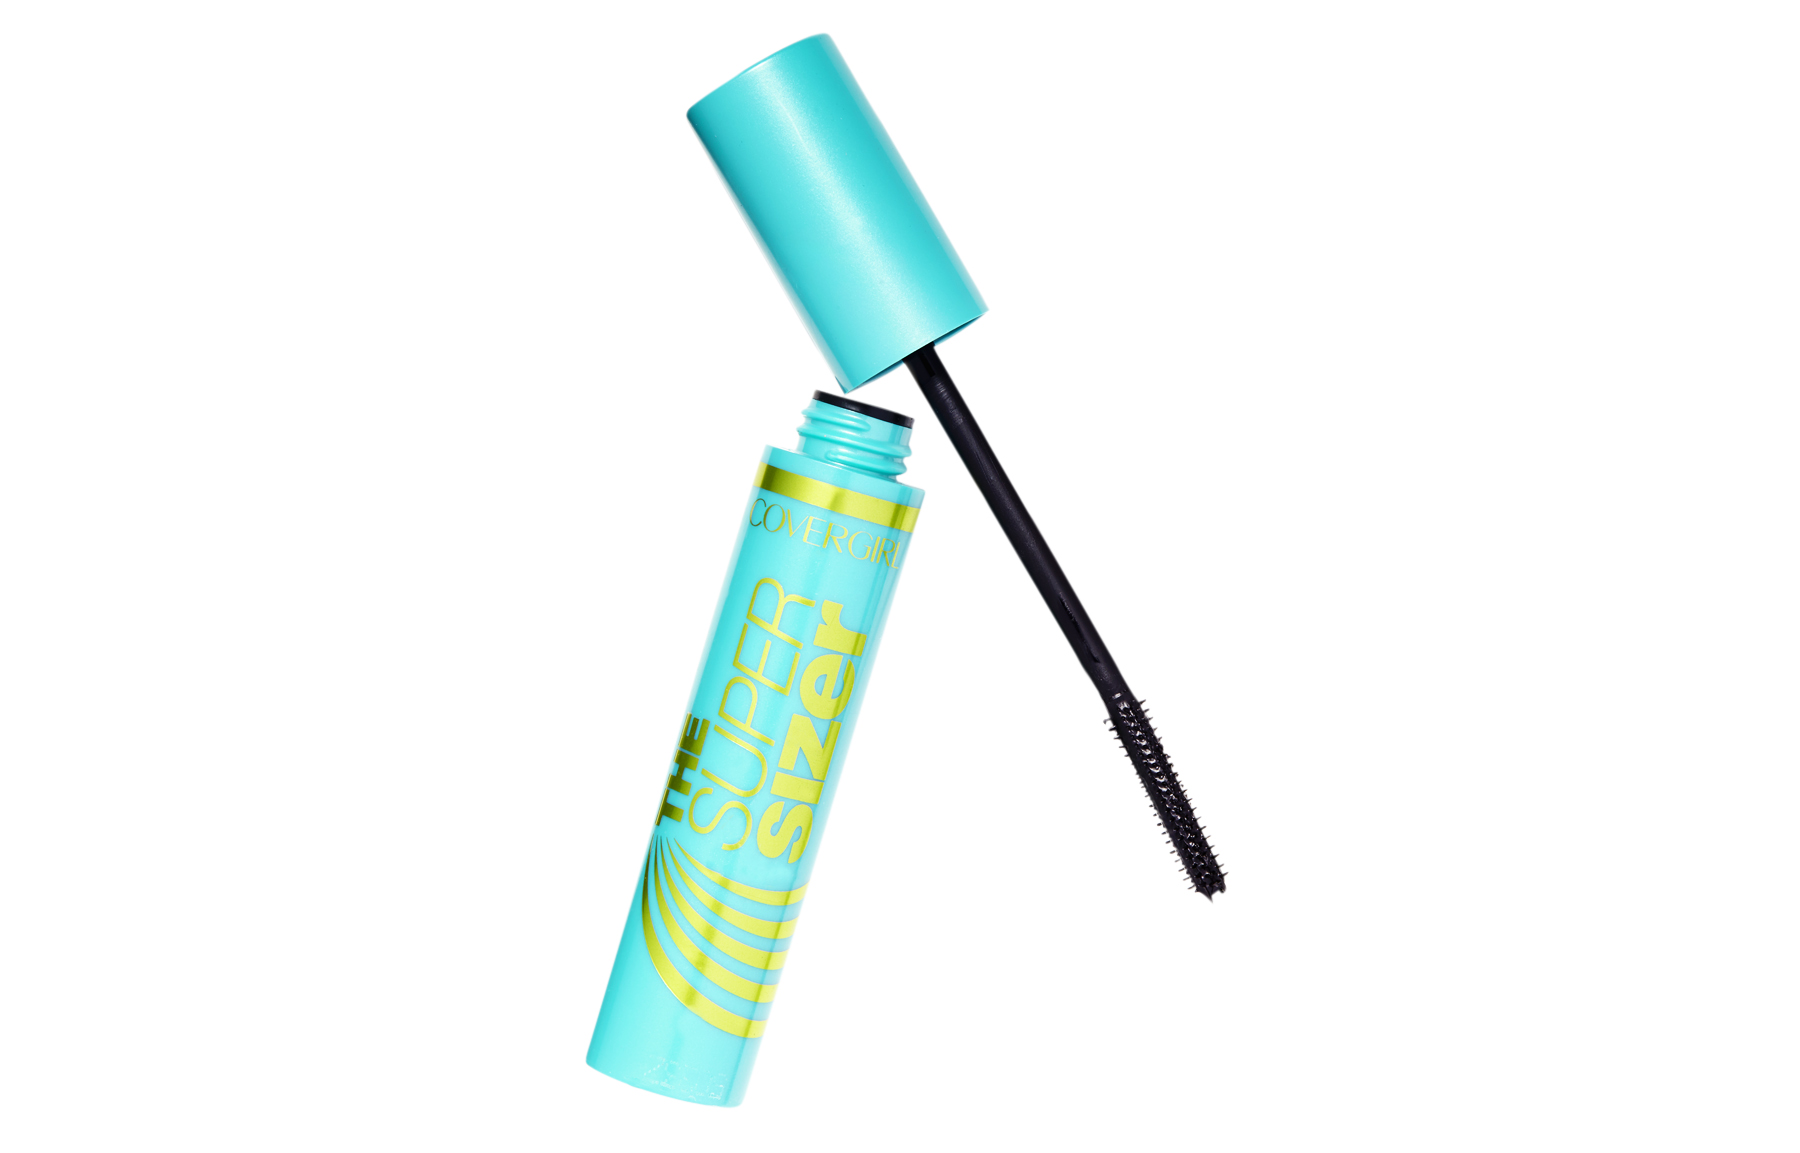 CoverGirl the Super Sizer Mascara by Lashblast in Very Black